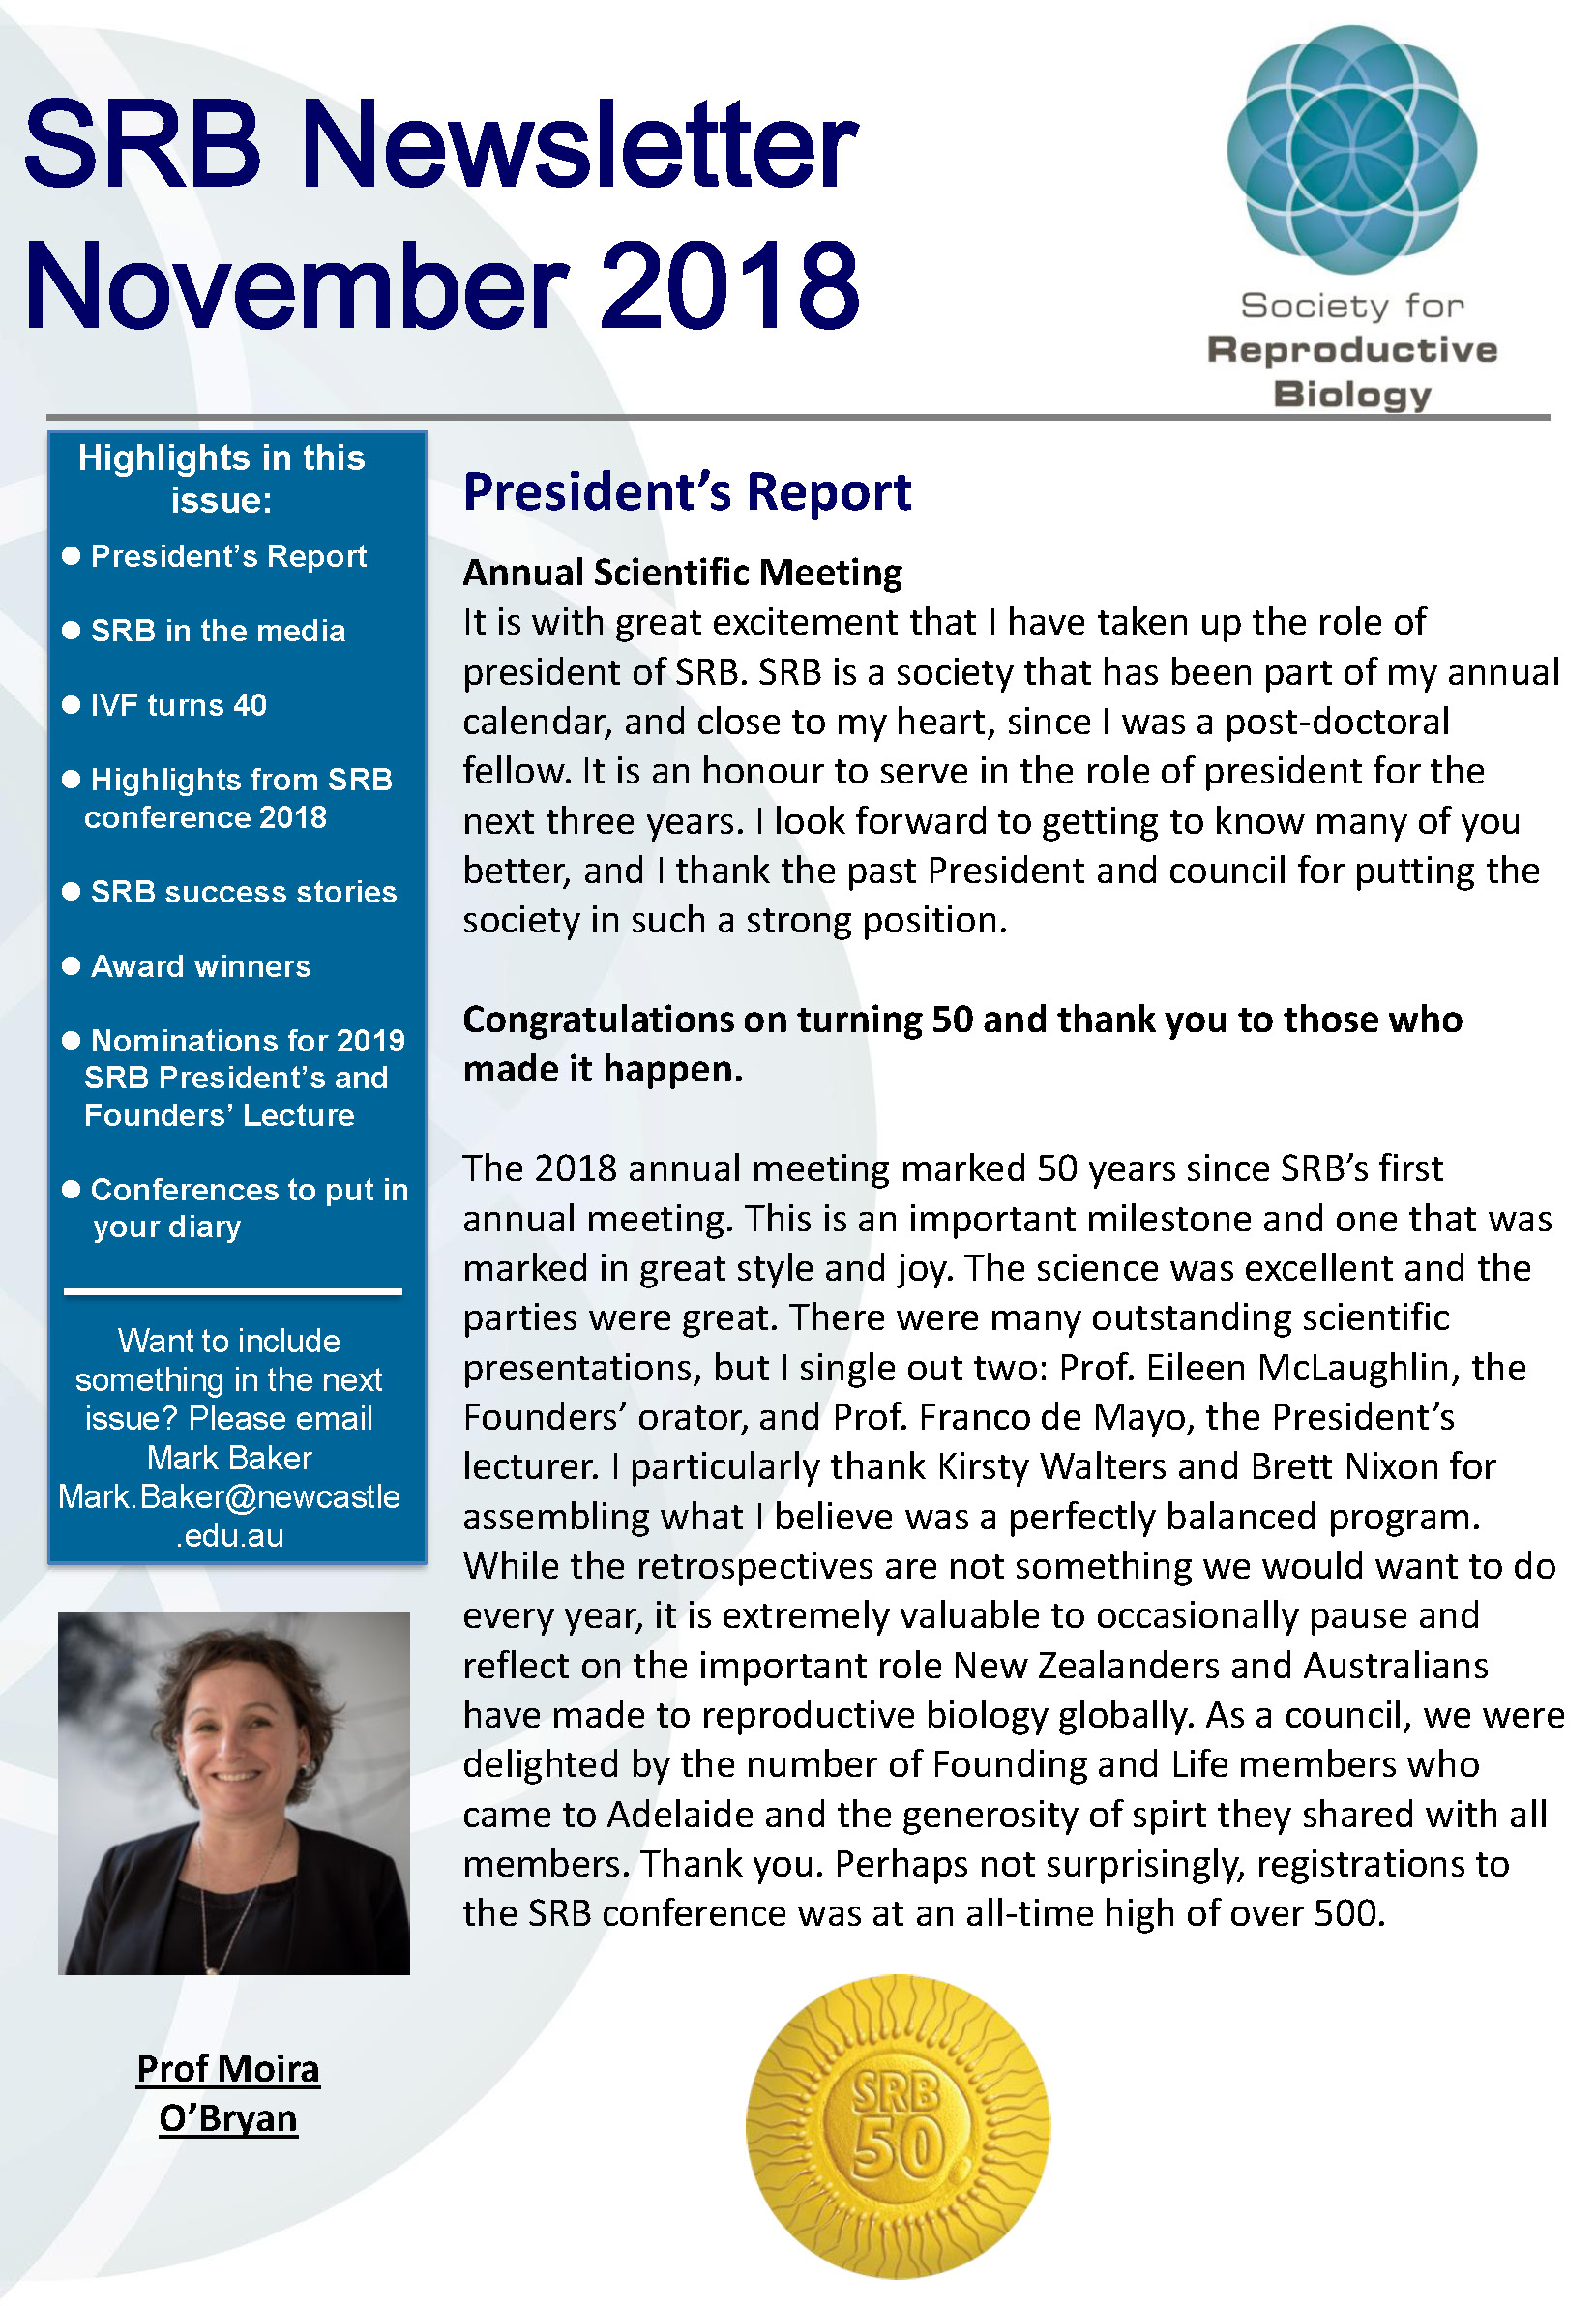 Newsletter November 2018 It is with great excitement that I have taken up the role of president of the SRB. SRB is a society that has been part of my annual calendar and close to my heart.......